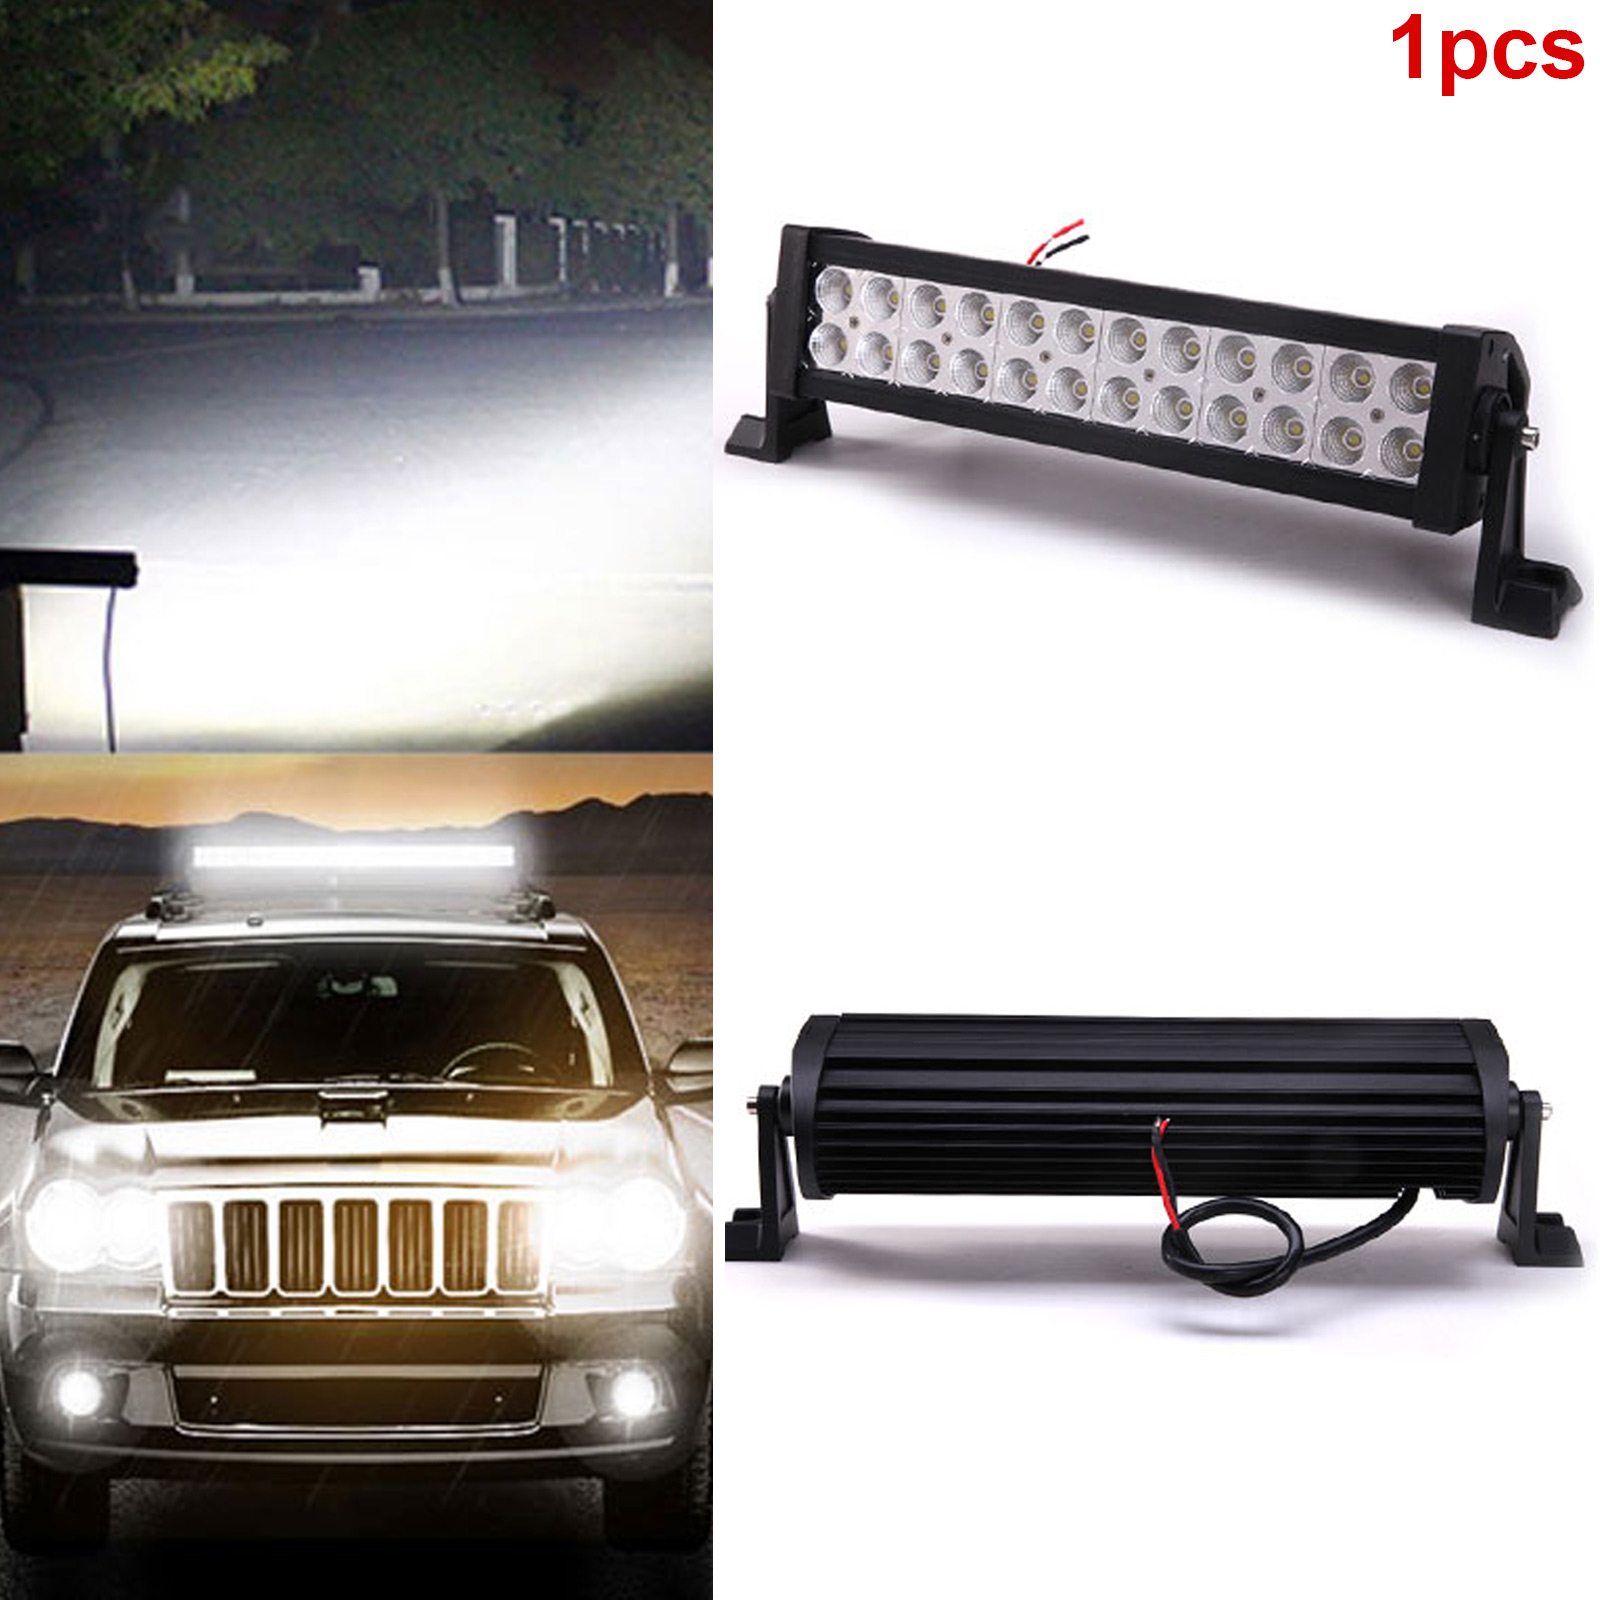 1PC Car 72W Led Work Light Offroad Light Bar for ATV SUV Truck Boat Spot Beam IP65 CSL2017 new light sourcing 17 inch 72w light bar with screws for wrangler offroad suv atv boat truck